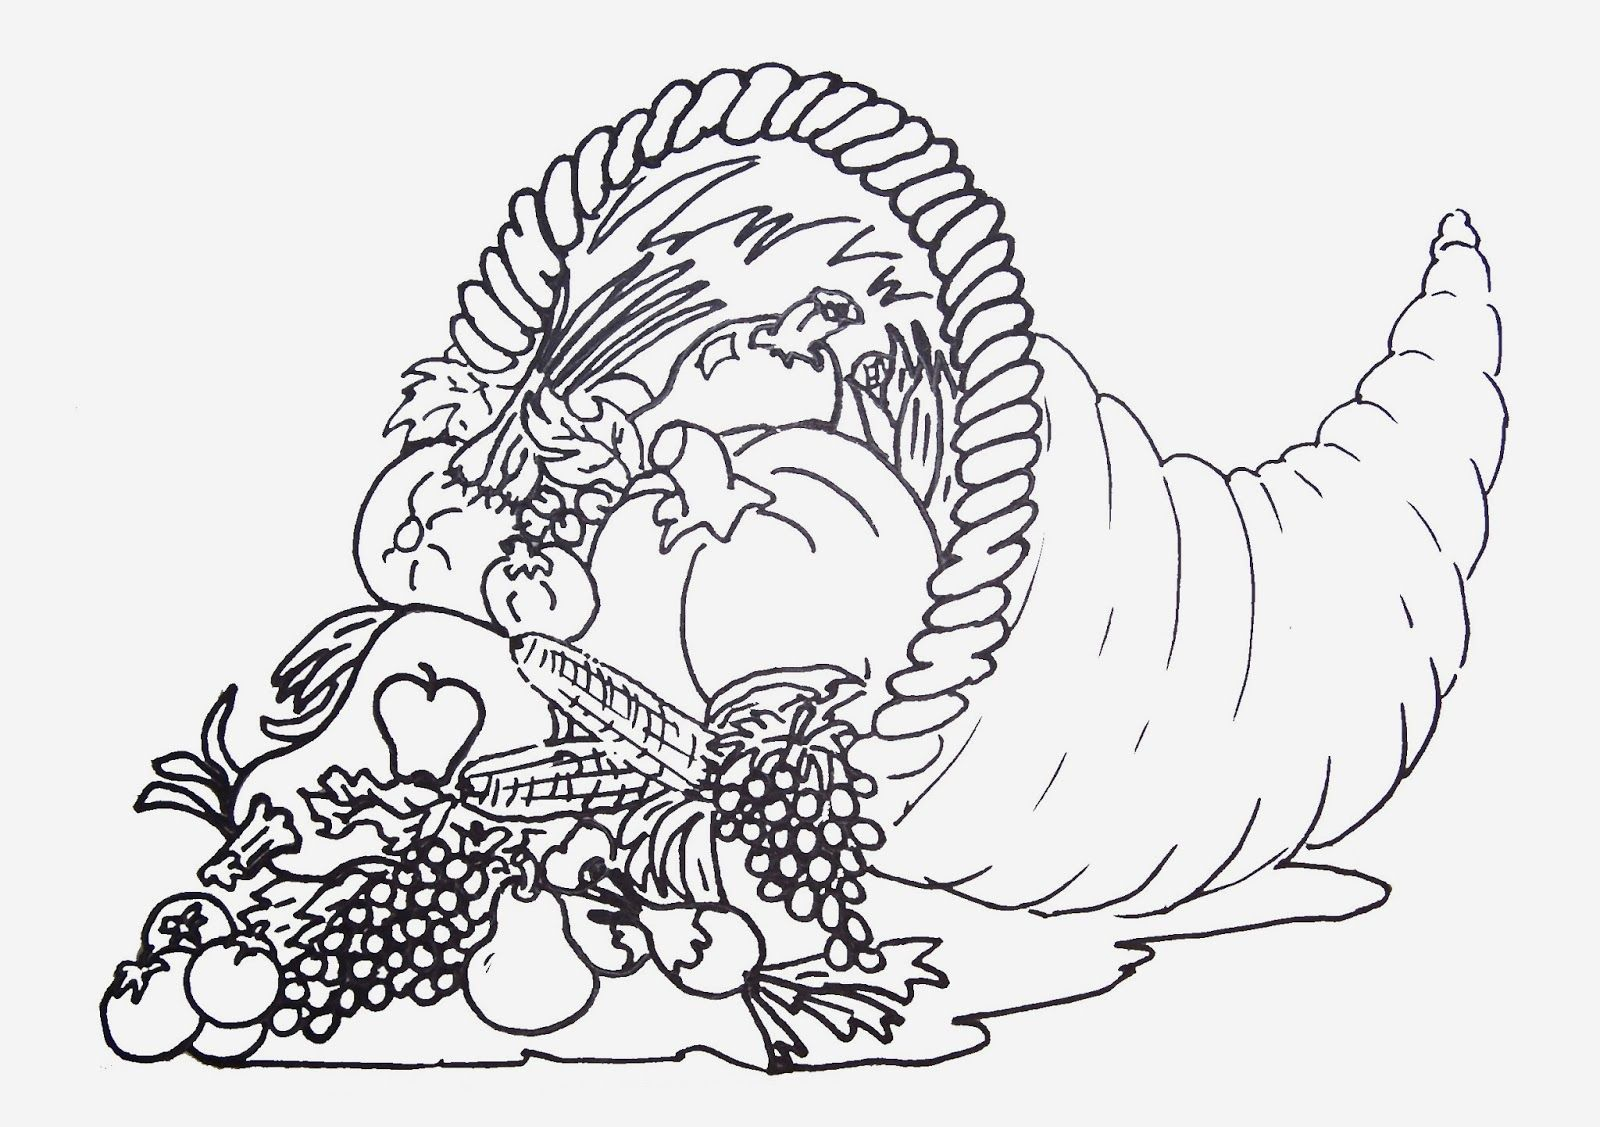 Coloring Pages Cornucopia Printable Coloring Pages cornucopia coloring page az pages thanksgiving halloween arts